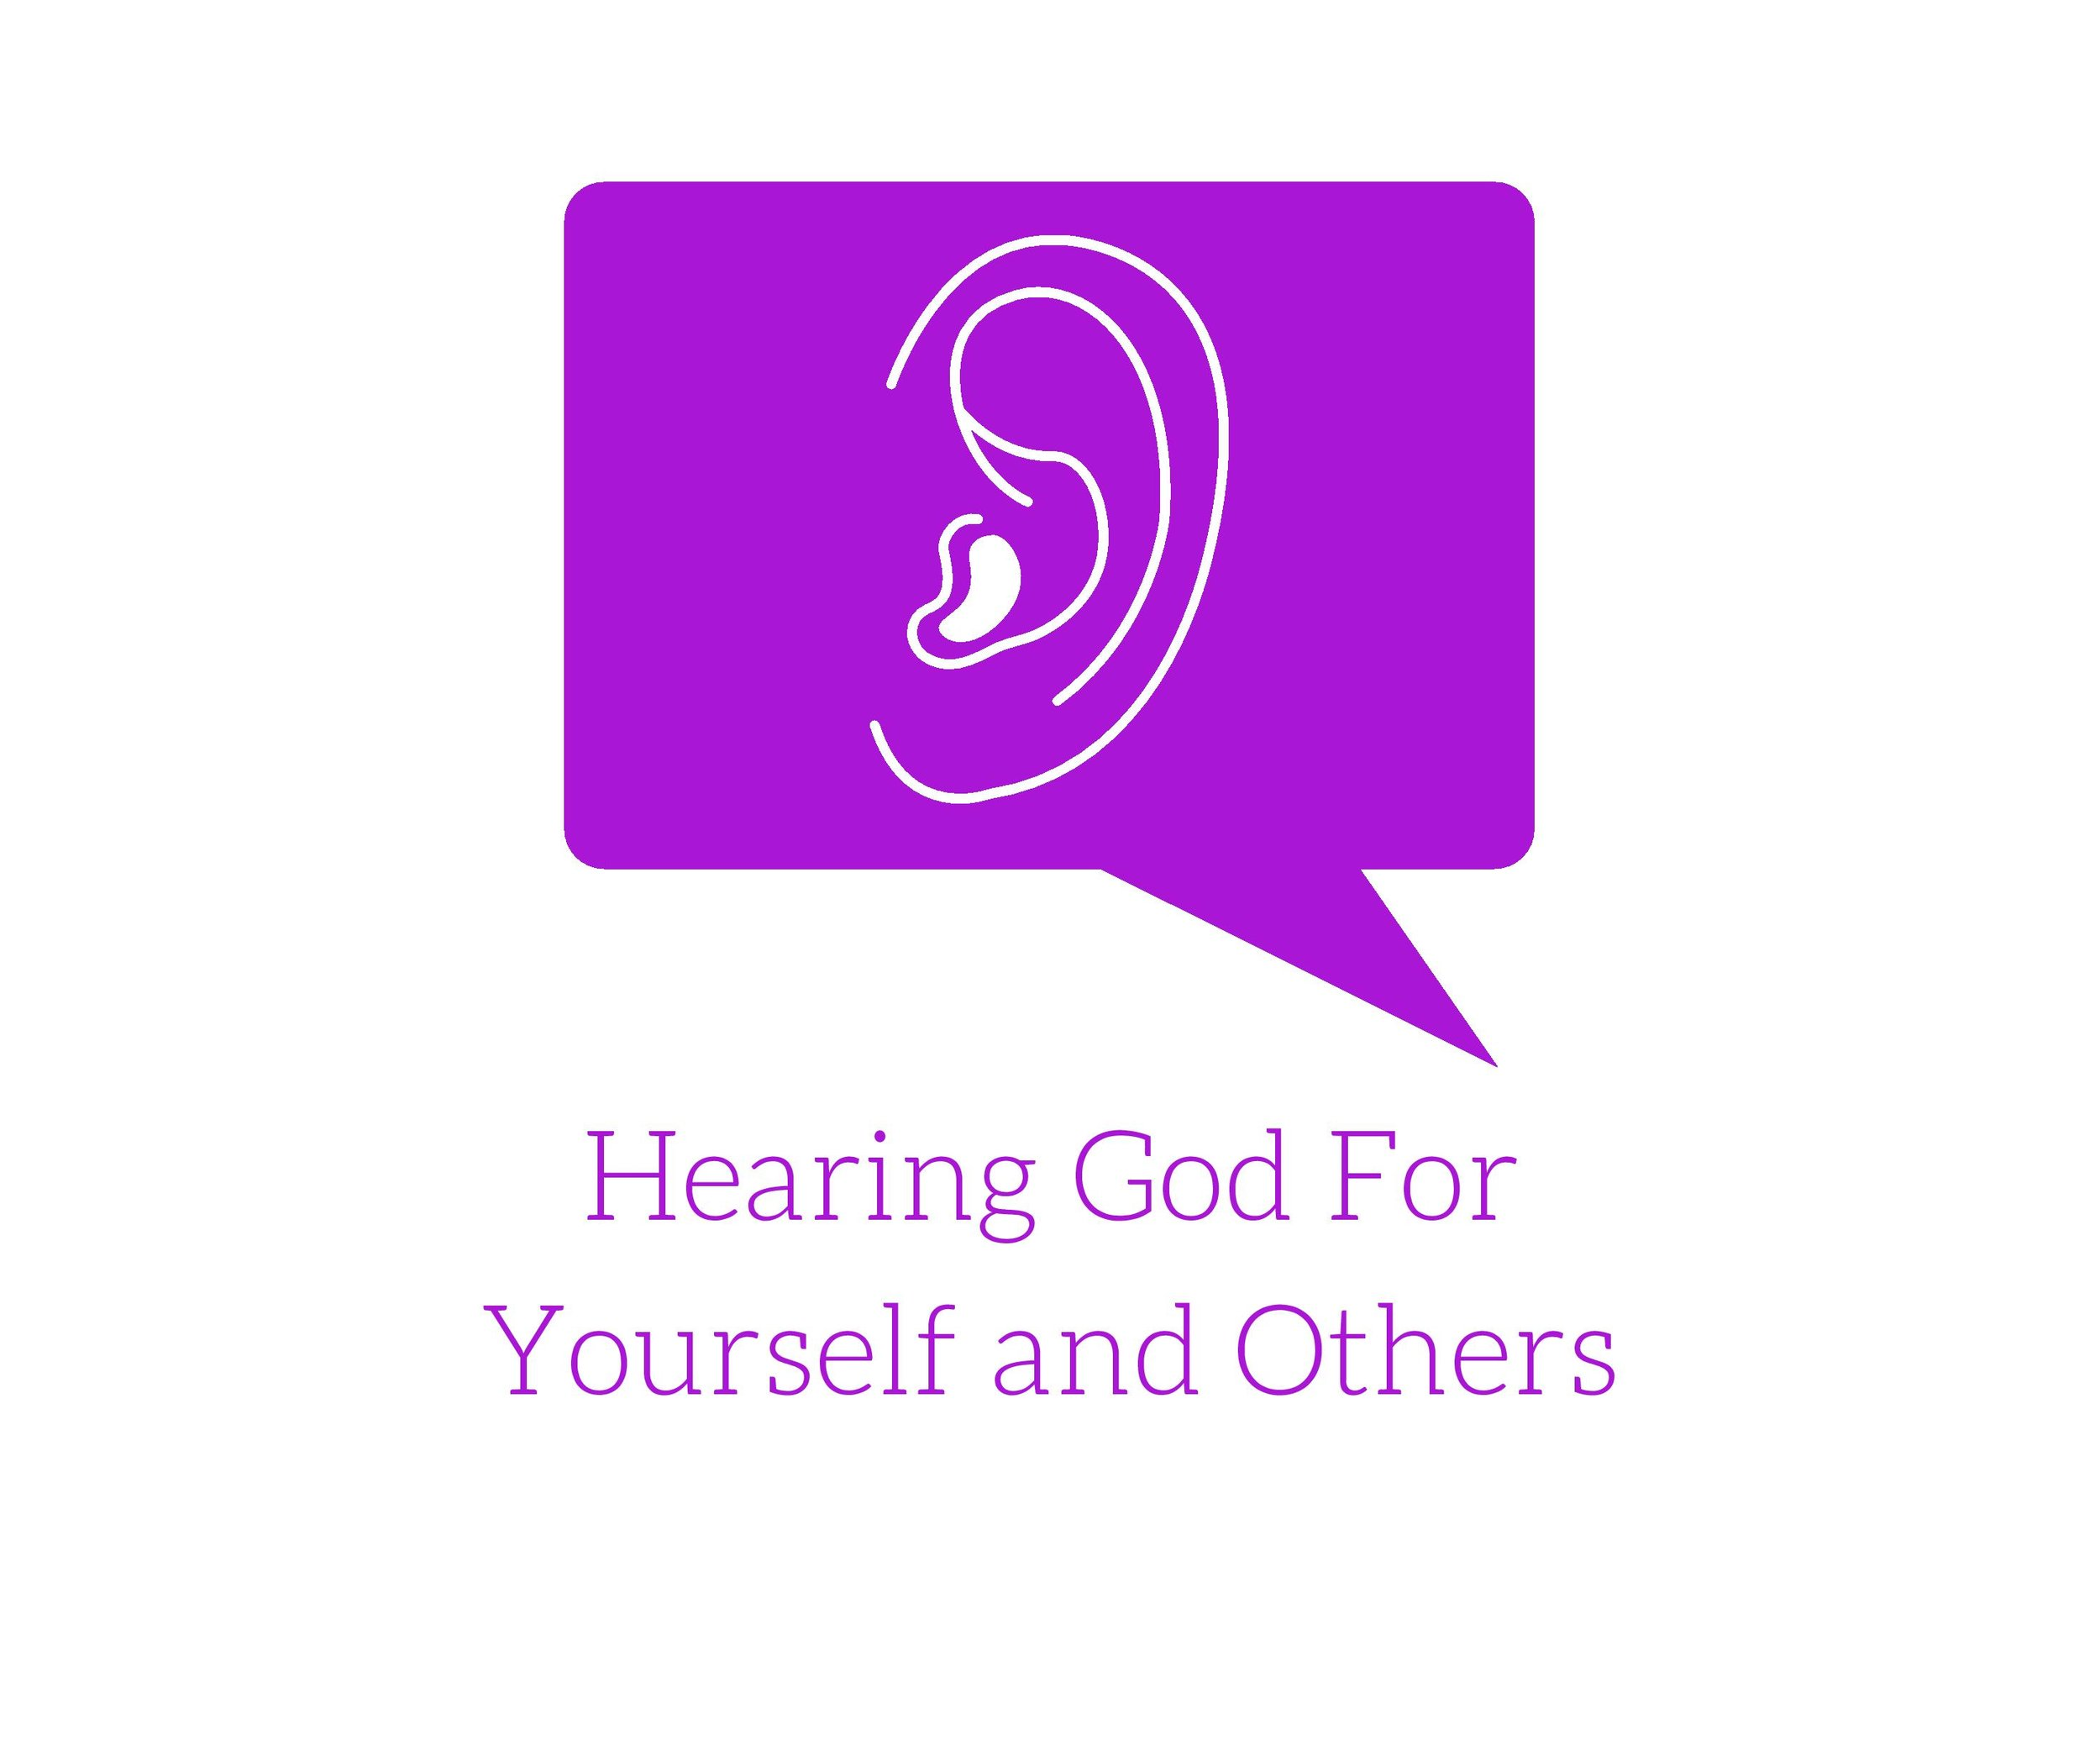 Hearing God For Yourself and Others-page-001.jpg